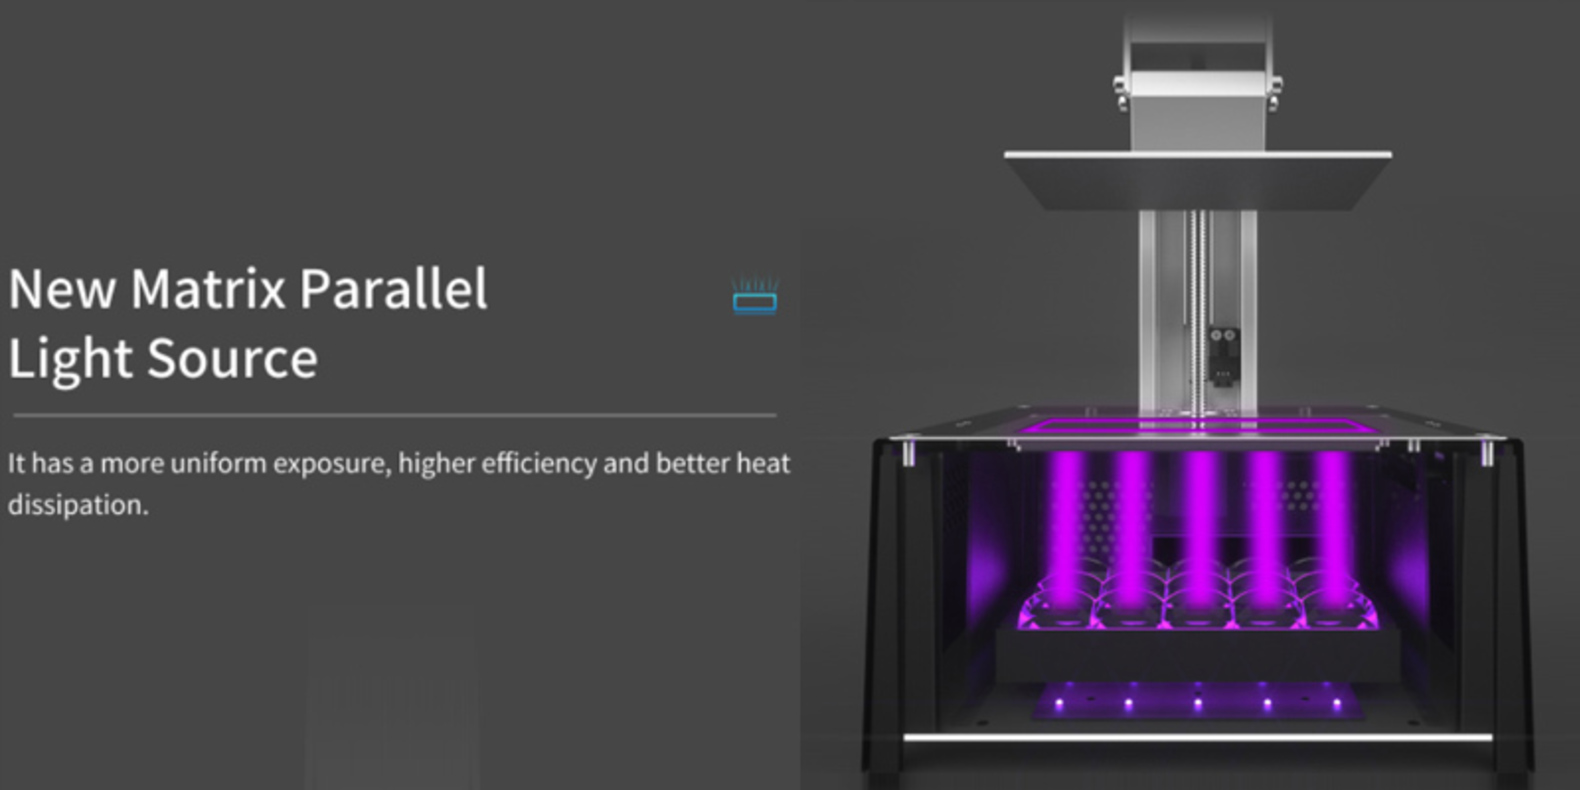 Anycubic Photon Mono Resin 3D printer provides High quality Results at $209